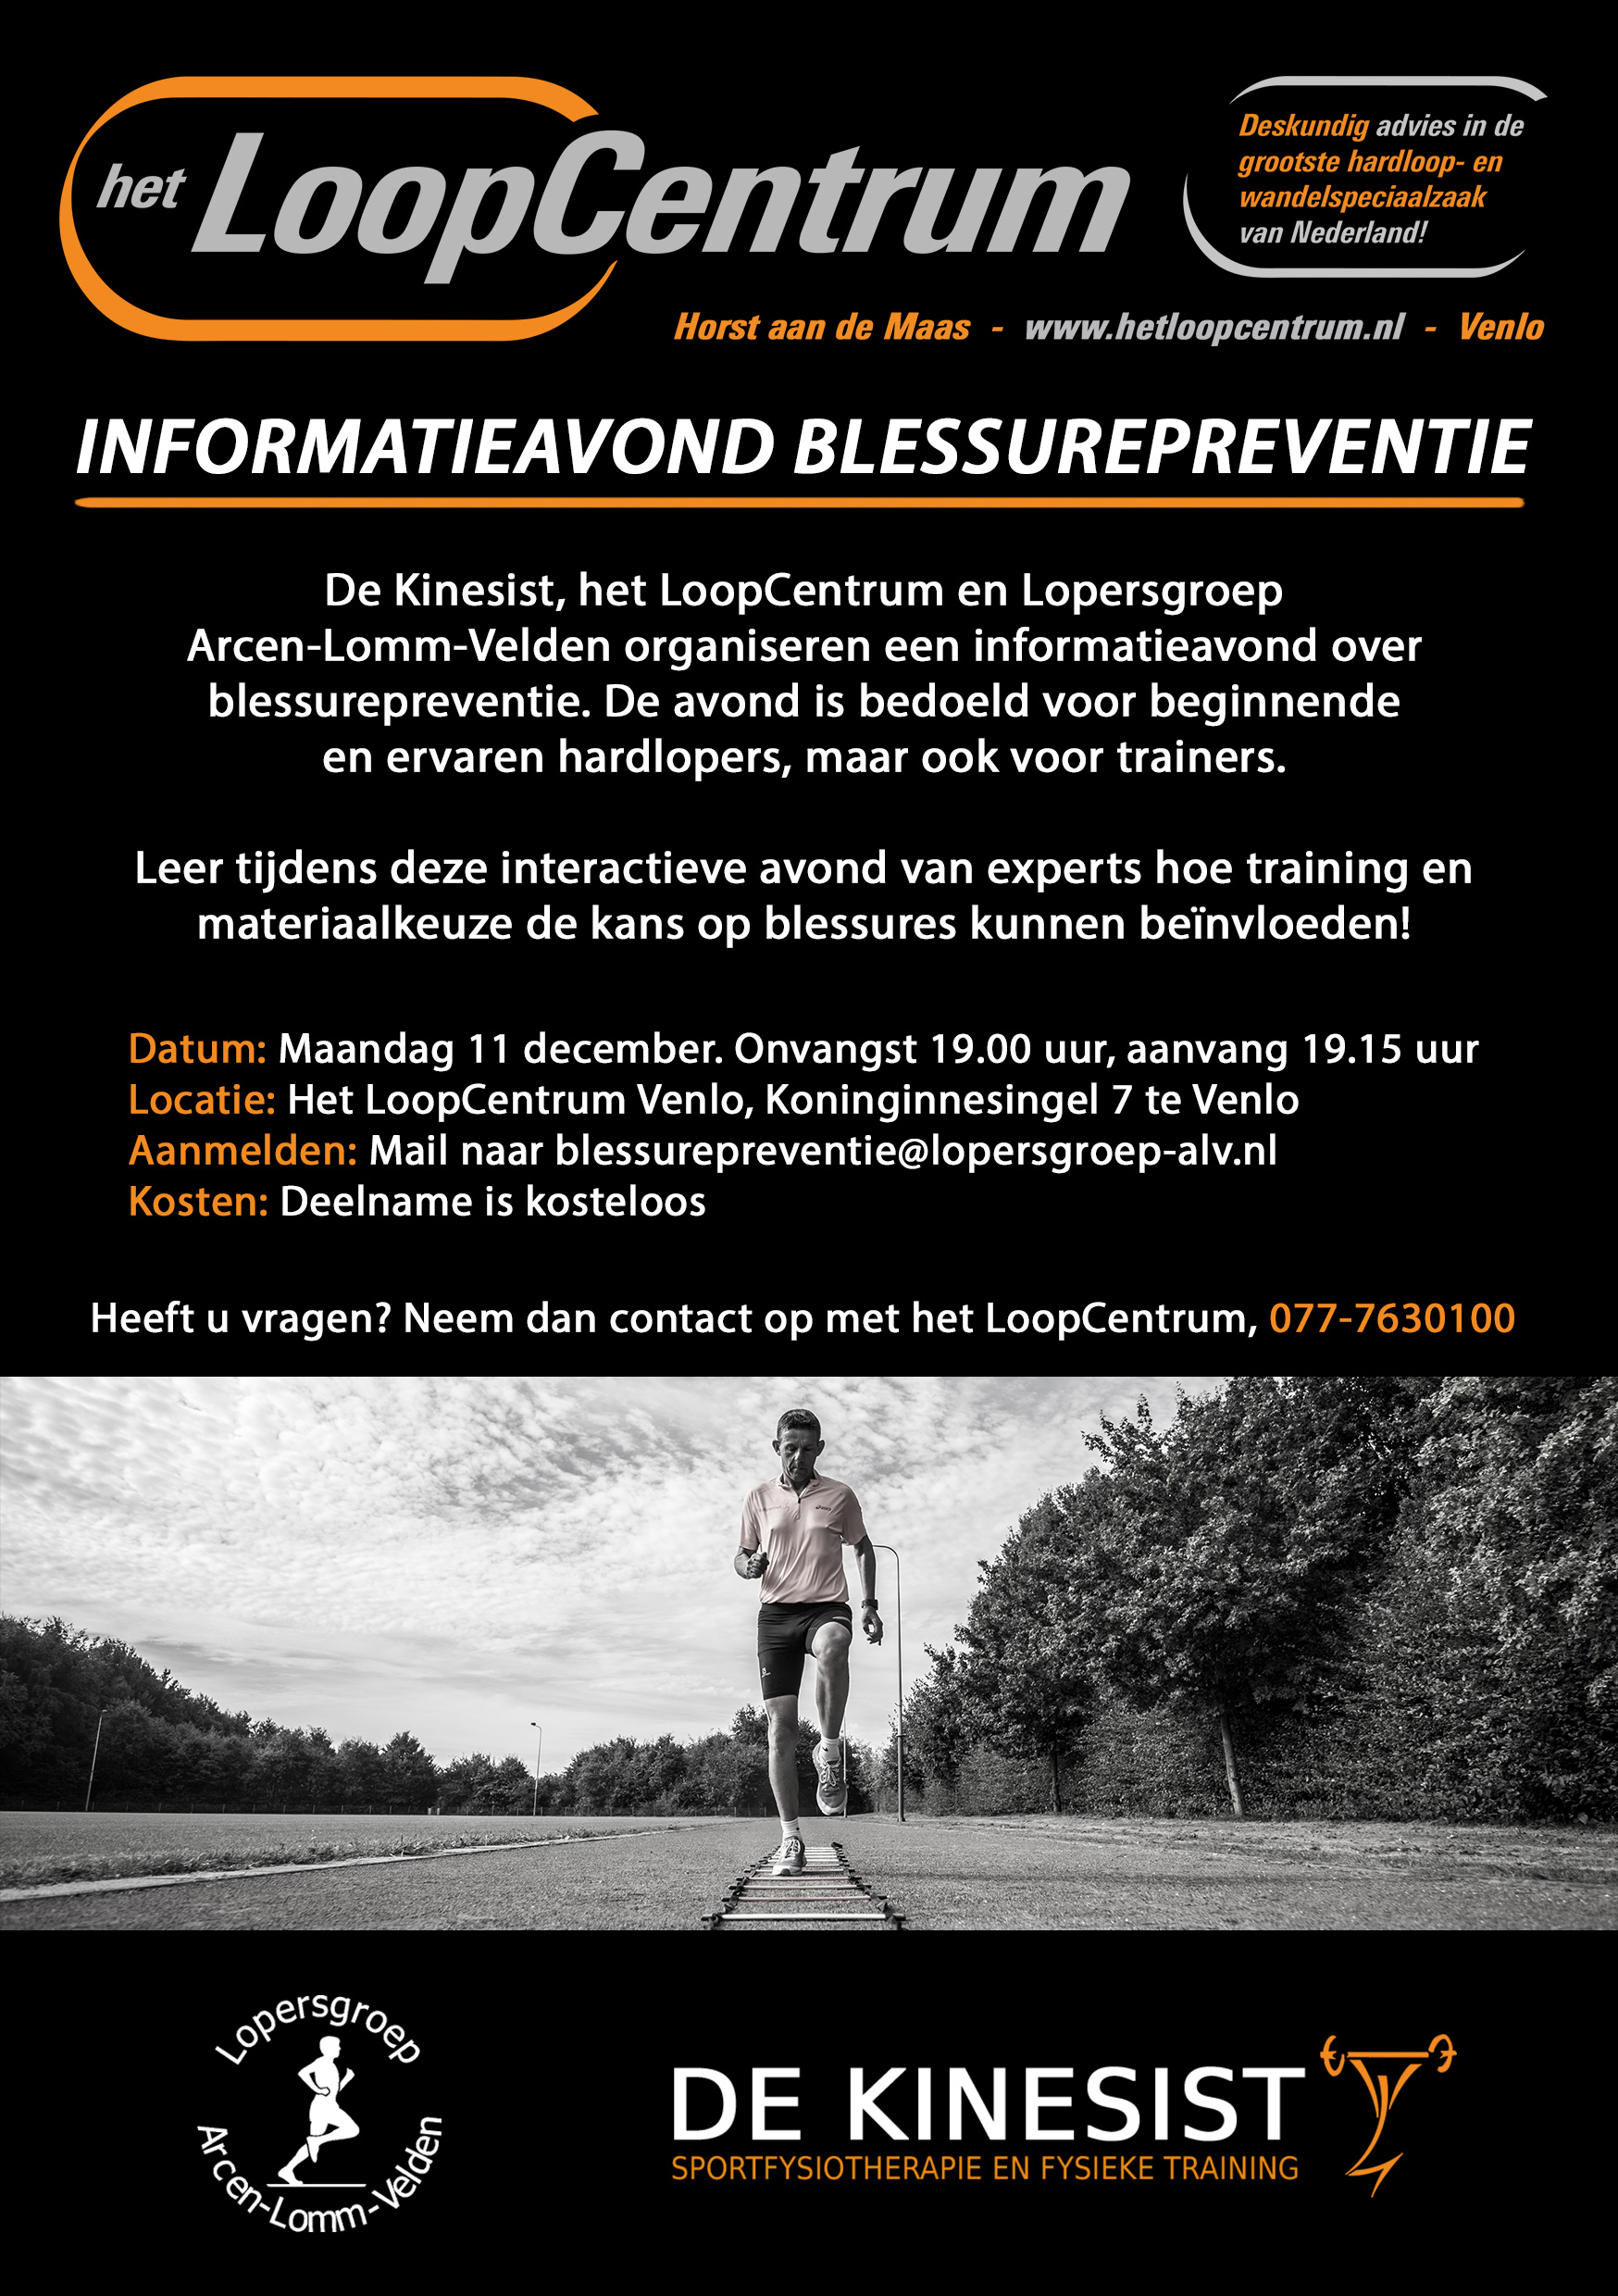 download de flyer over blessure preventie